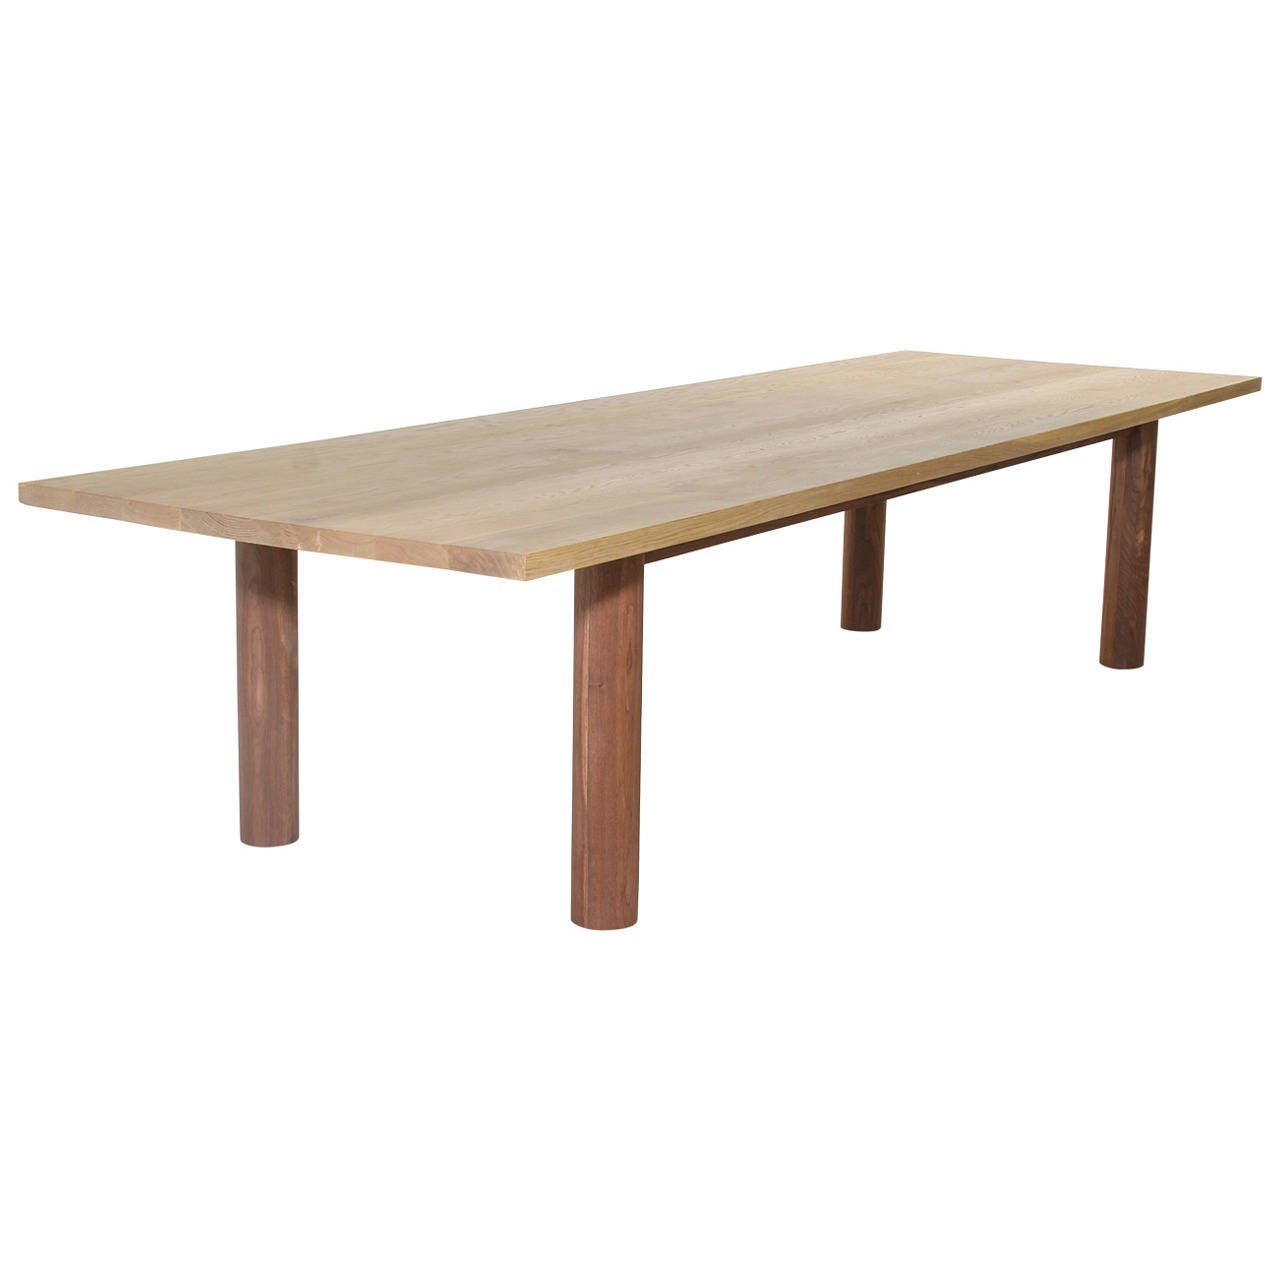 Oak Dining Table with Walnut Base By Thomas Hayes Studio  : 1618272l from www.1stdibs.com size 1280 x 1280 jpeg 40kB